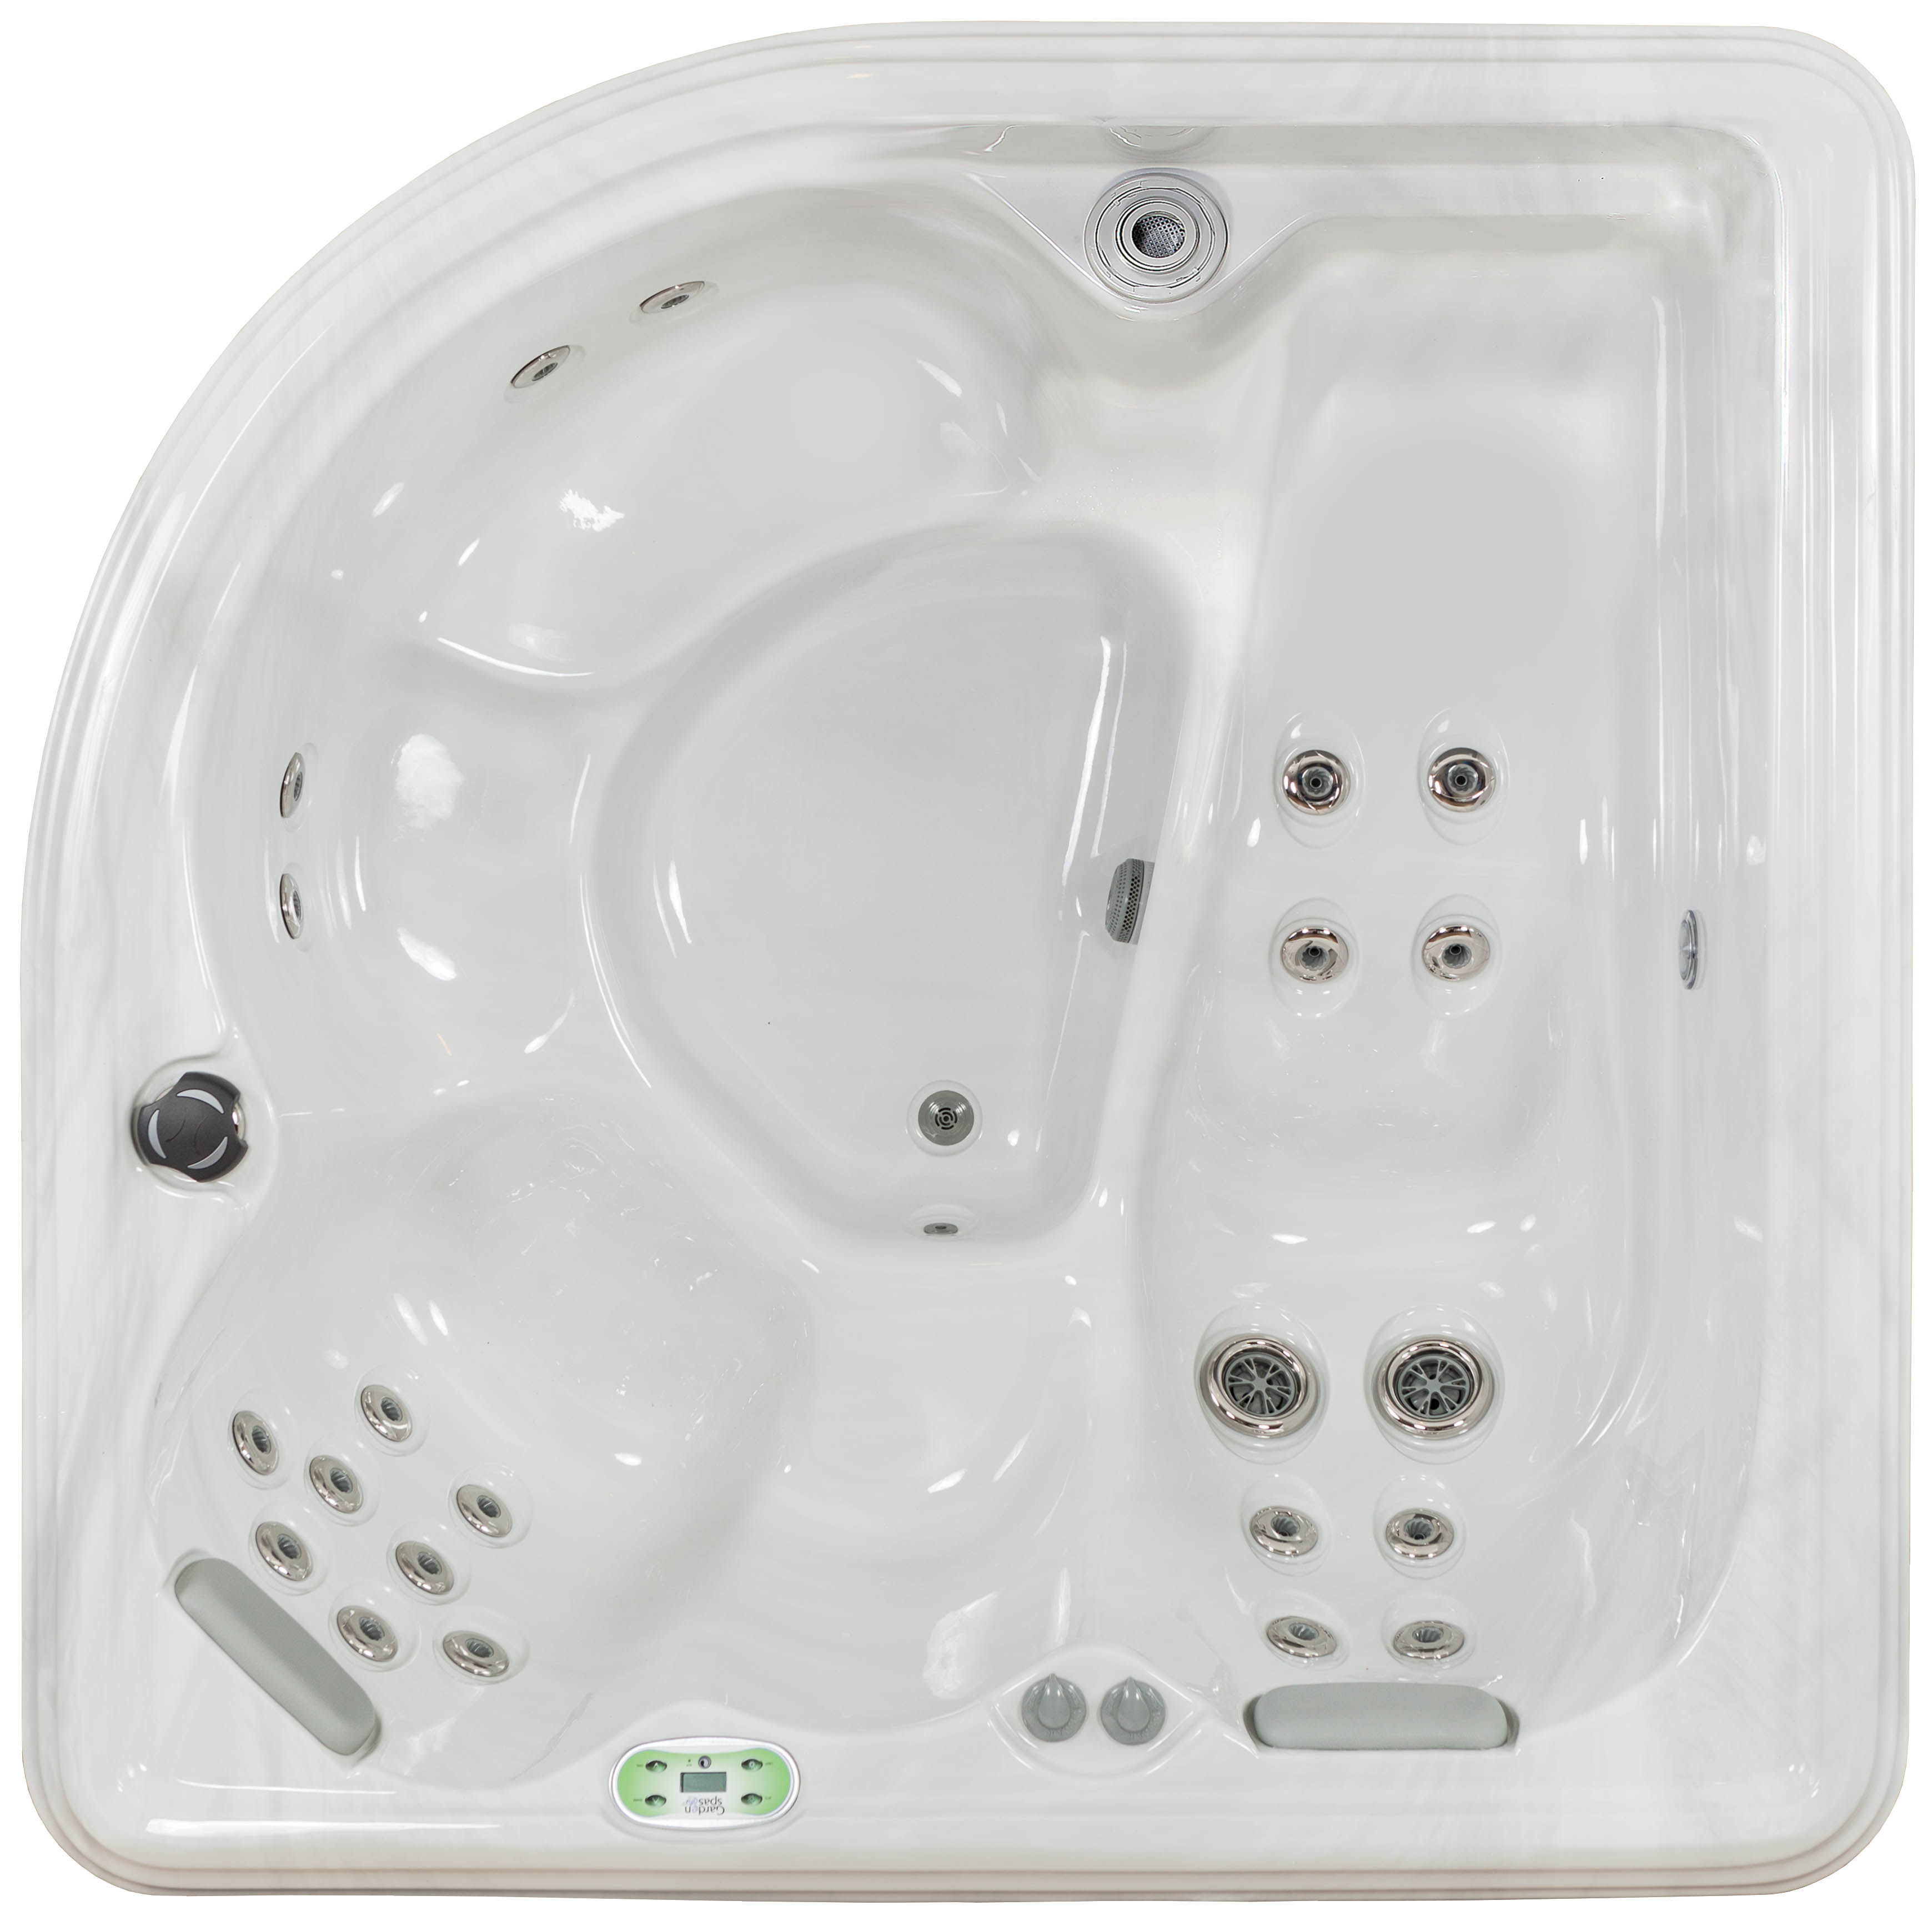 Garden Spas Showroom | Spa & Tub Manufacturers, Inc.